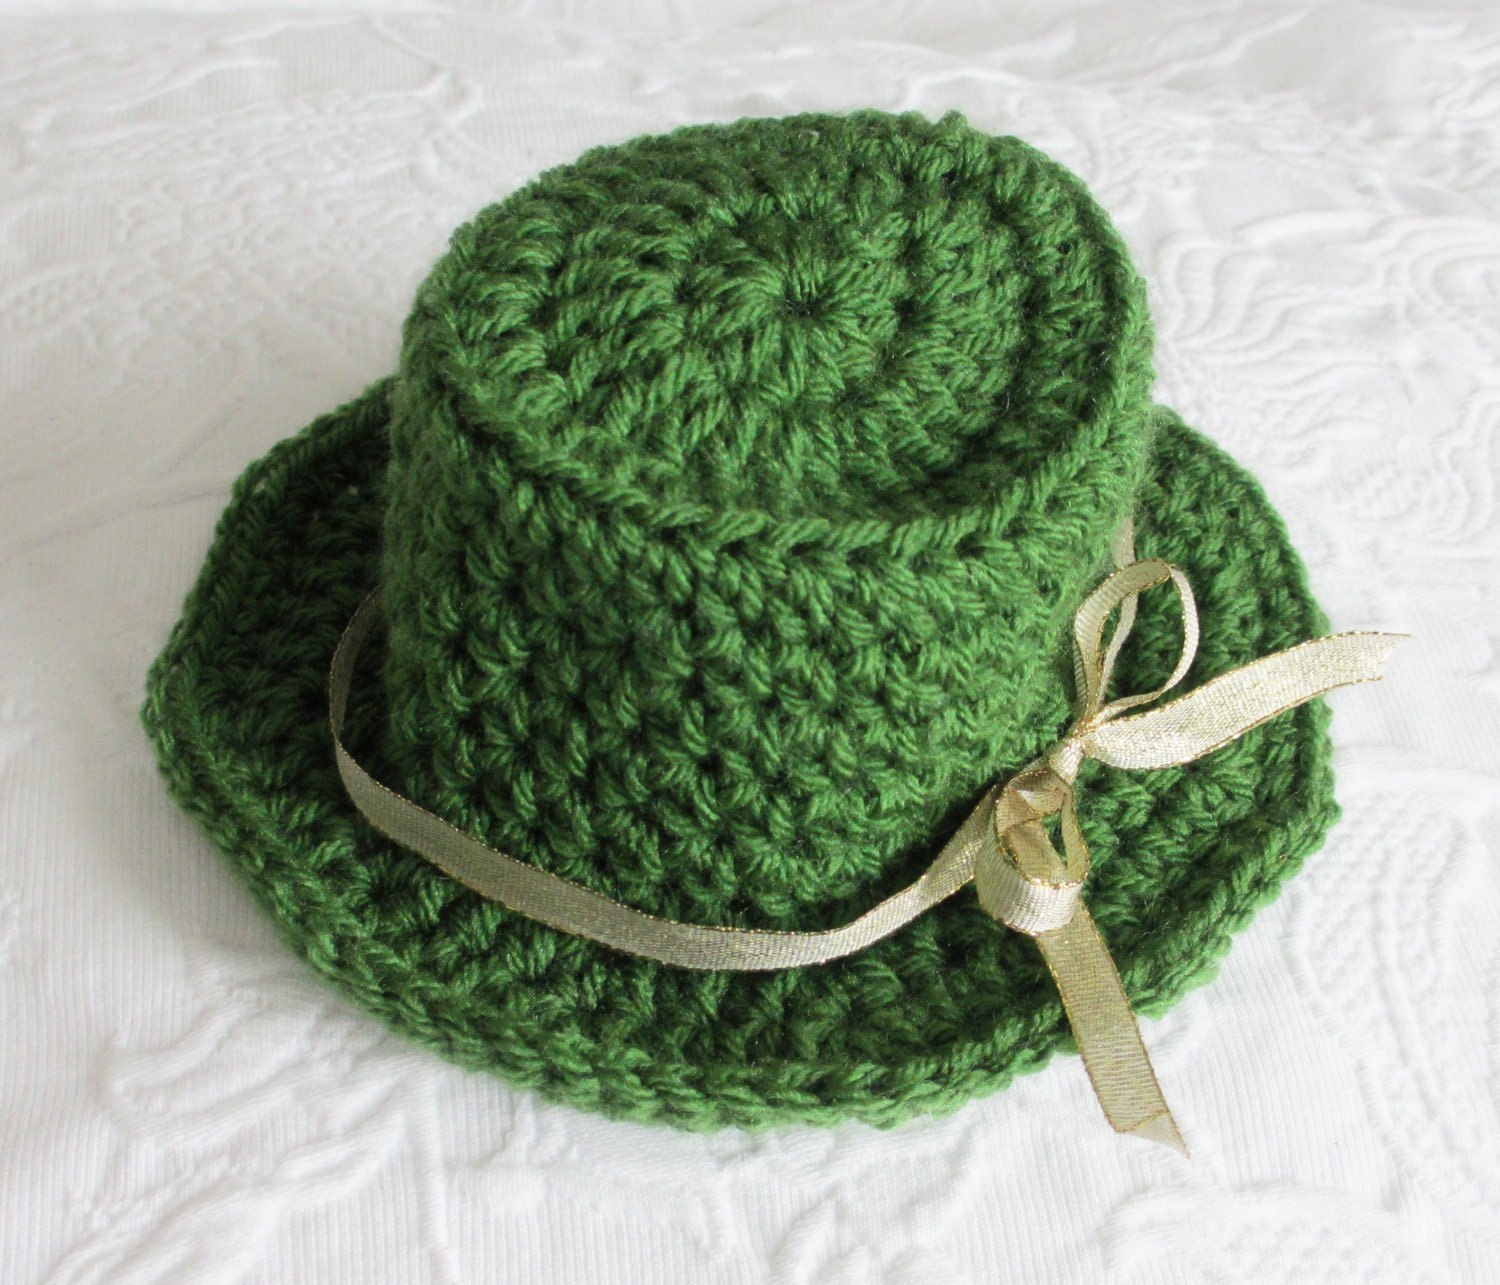 CURLY TOP CROCHETED HAT PATTERN - Crochet and Knitting ...